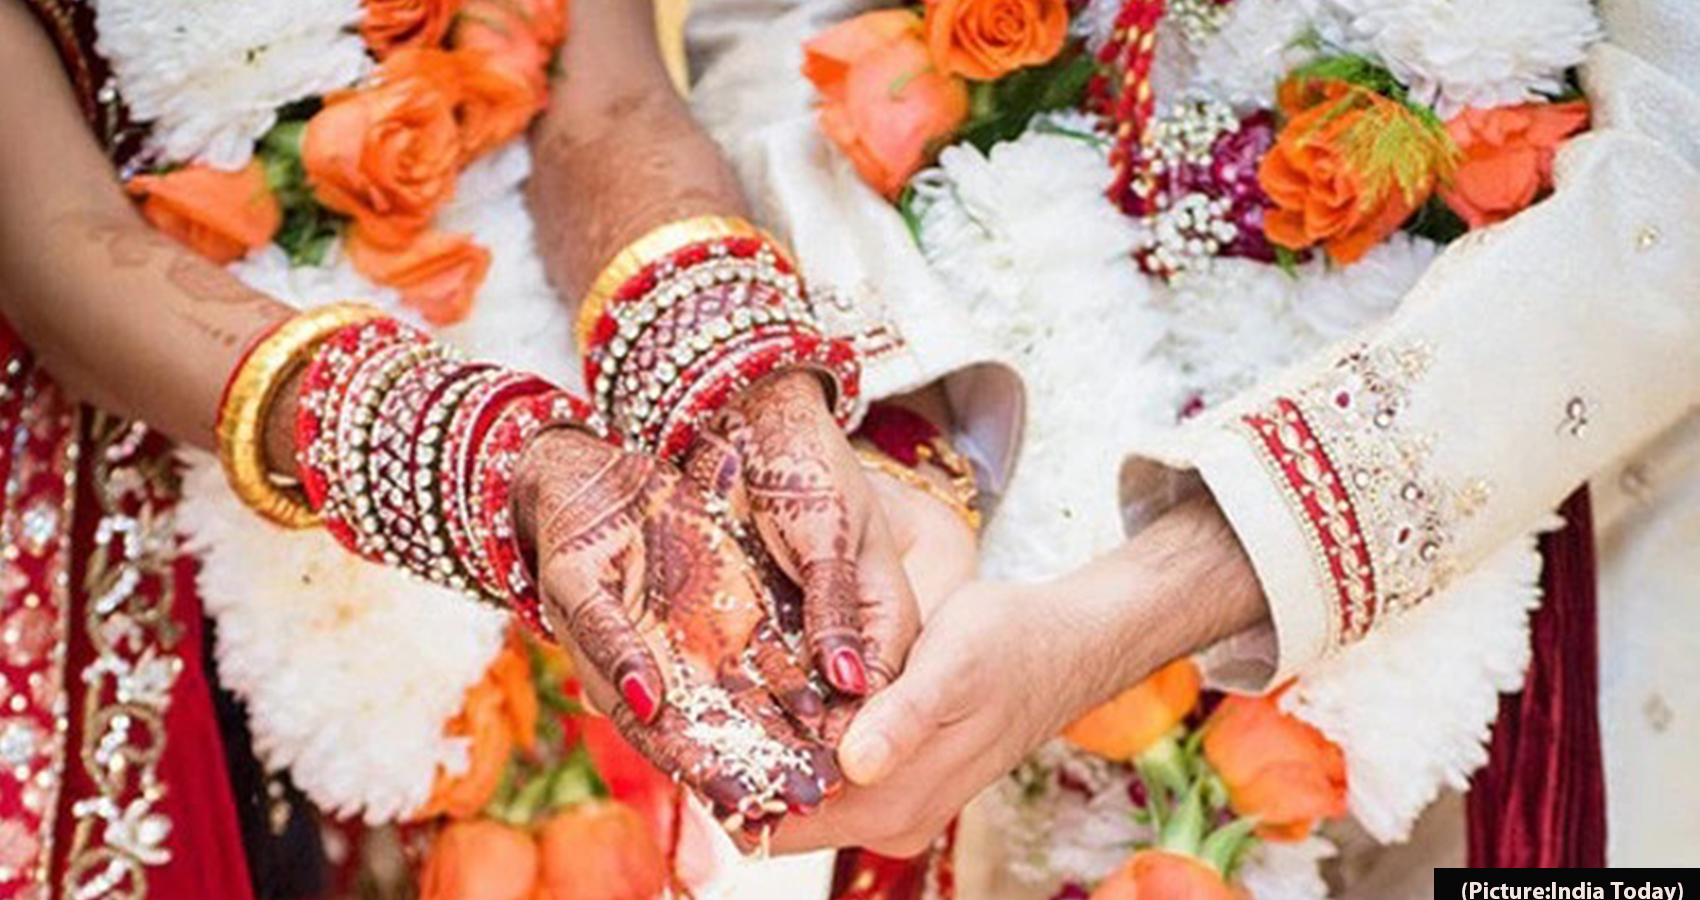 Family Values, Religious Sanctity Keep Indian Marriages Together'